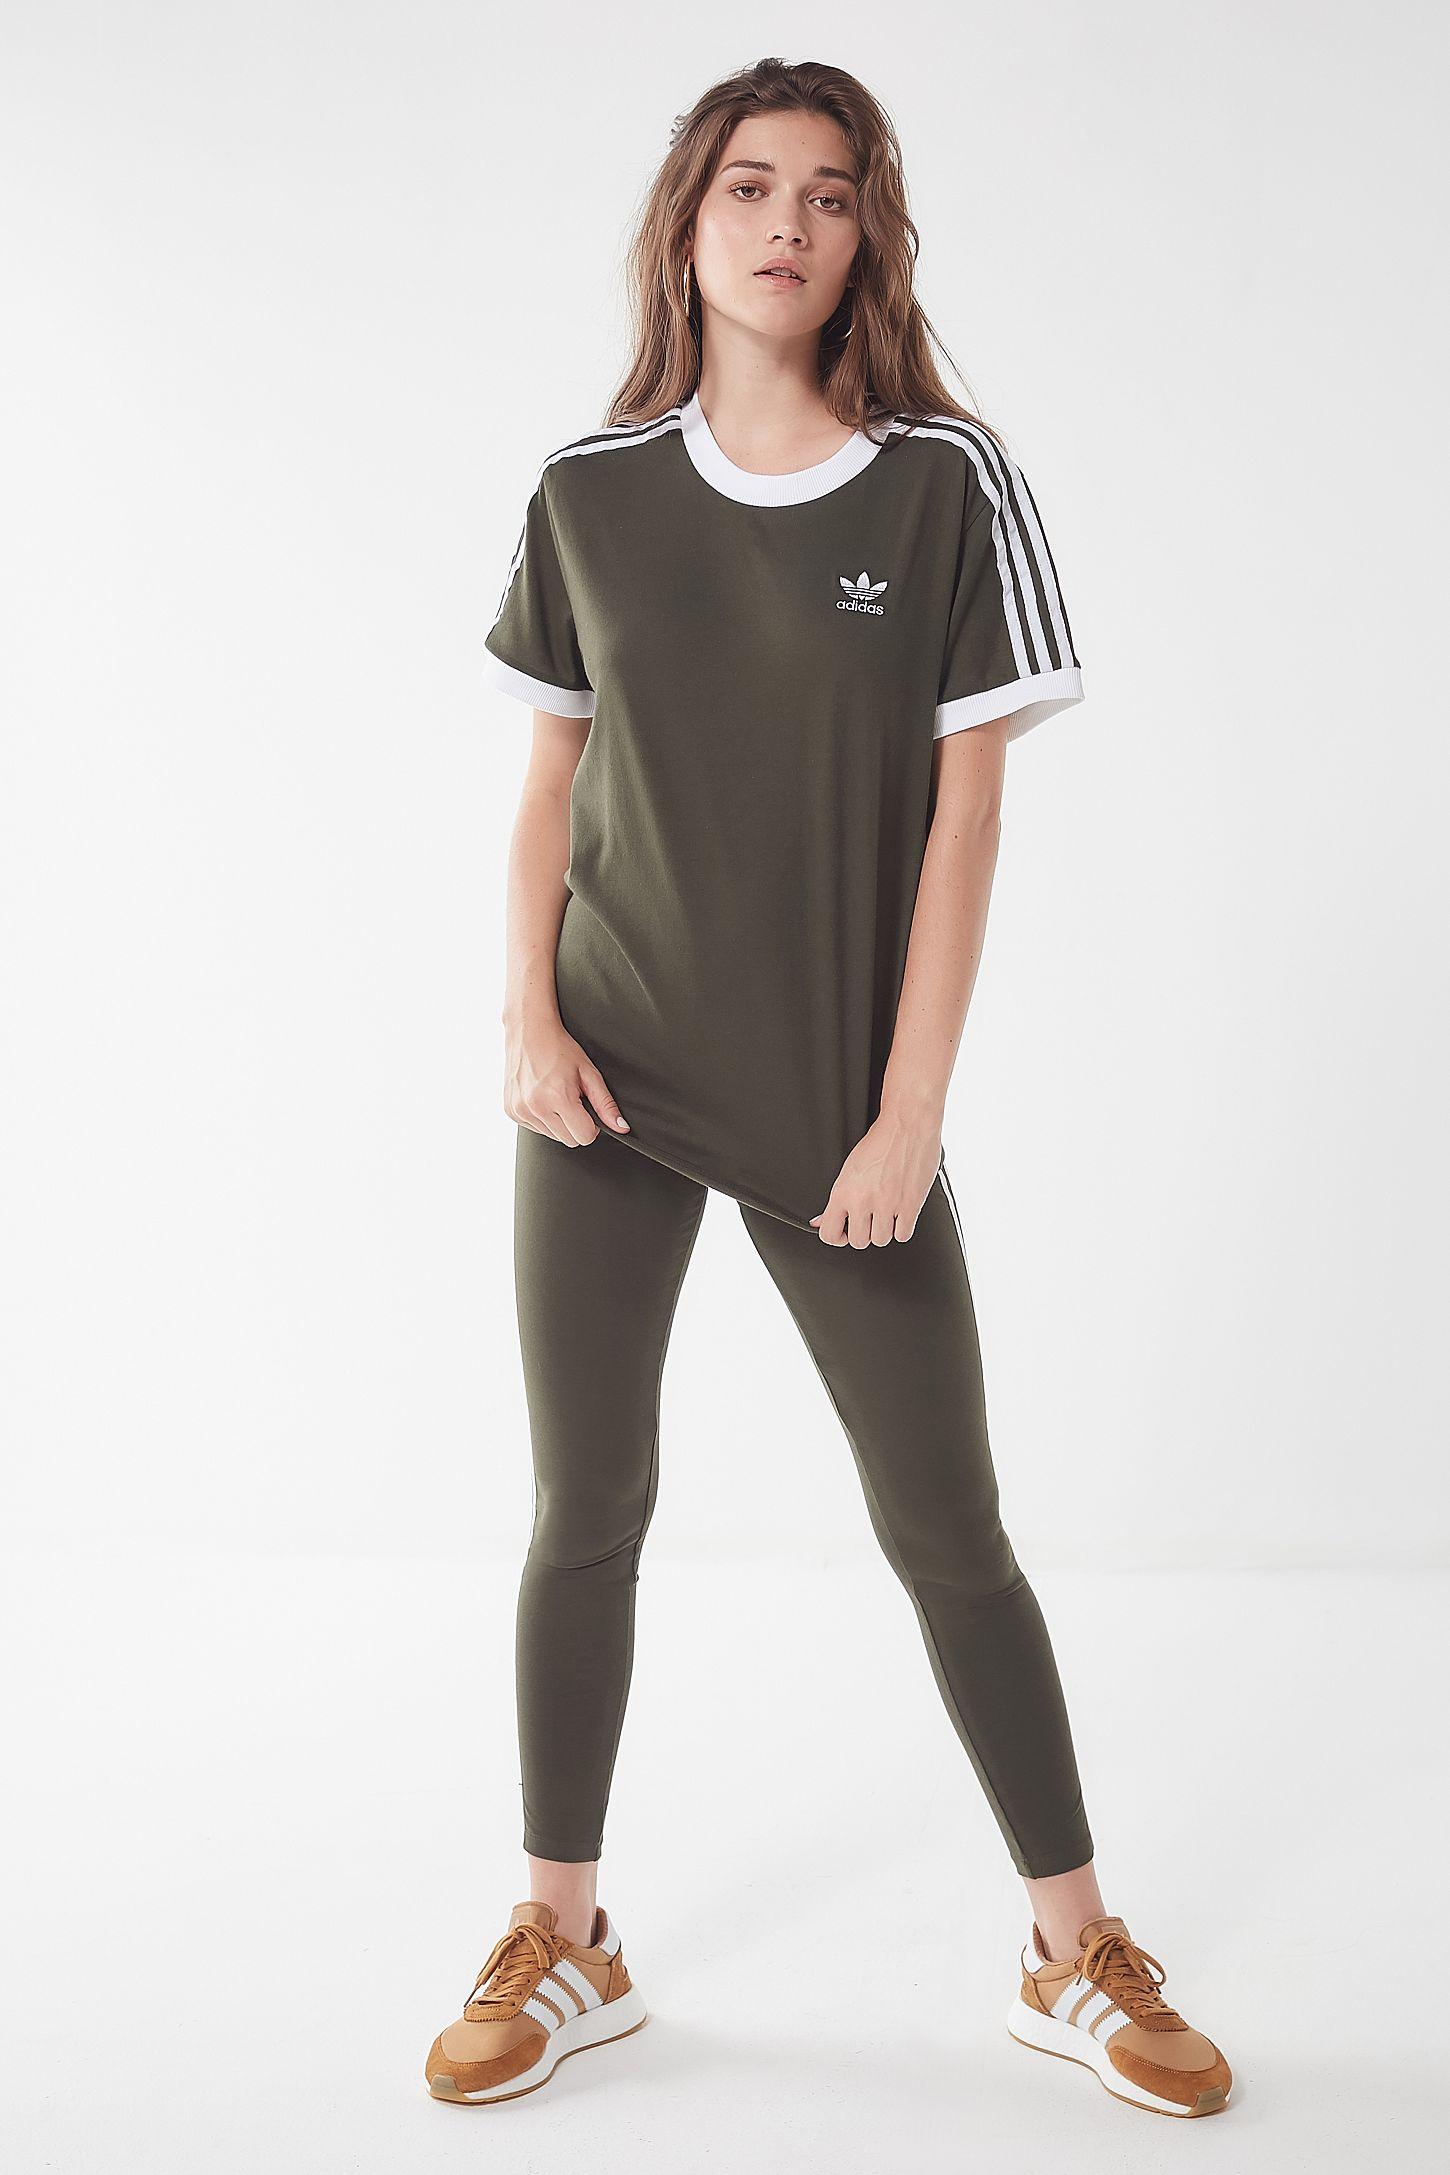 Adidas Originals 3 Stripes Ringer Tee Urban Outfitters Lover Graphic T Shirts Putih L Slide View 4